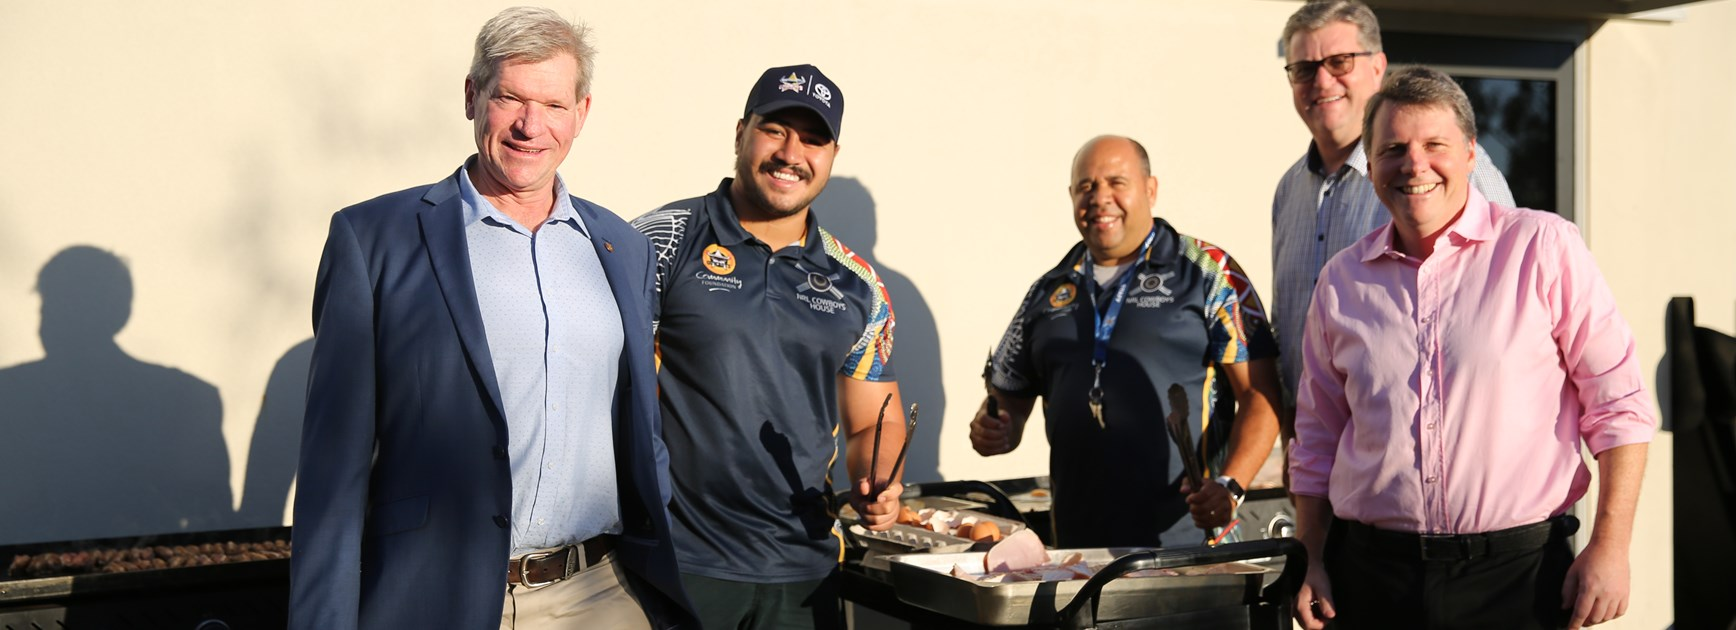 NRL Cowboys House hosts Parliament